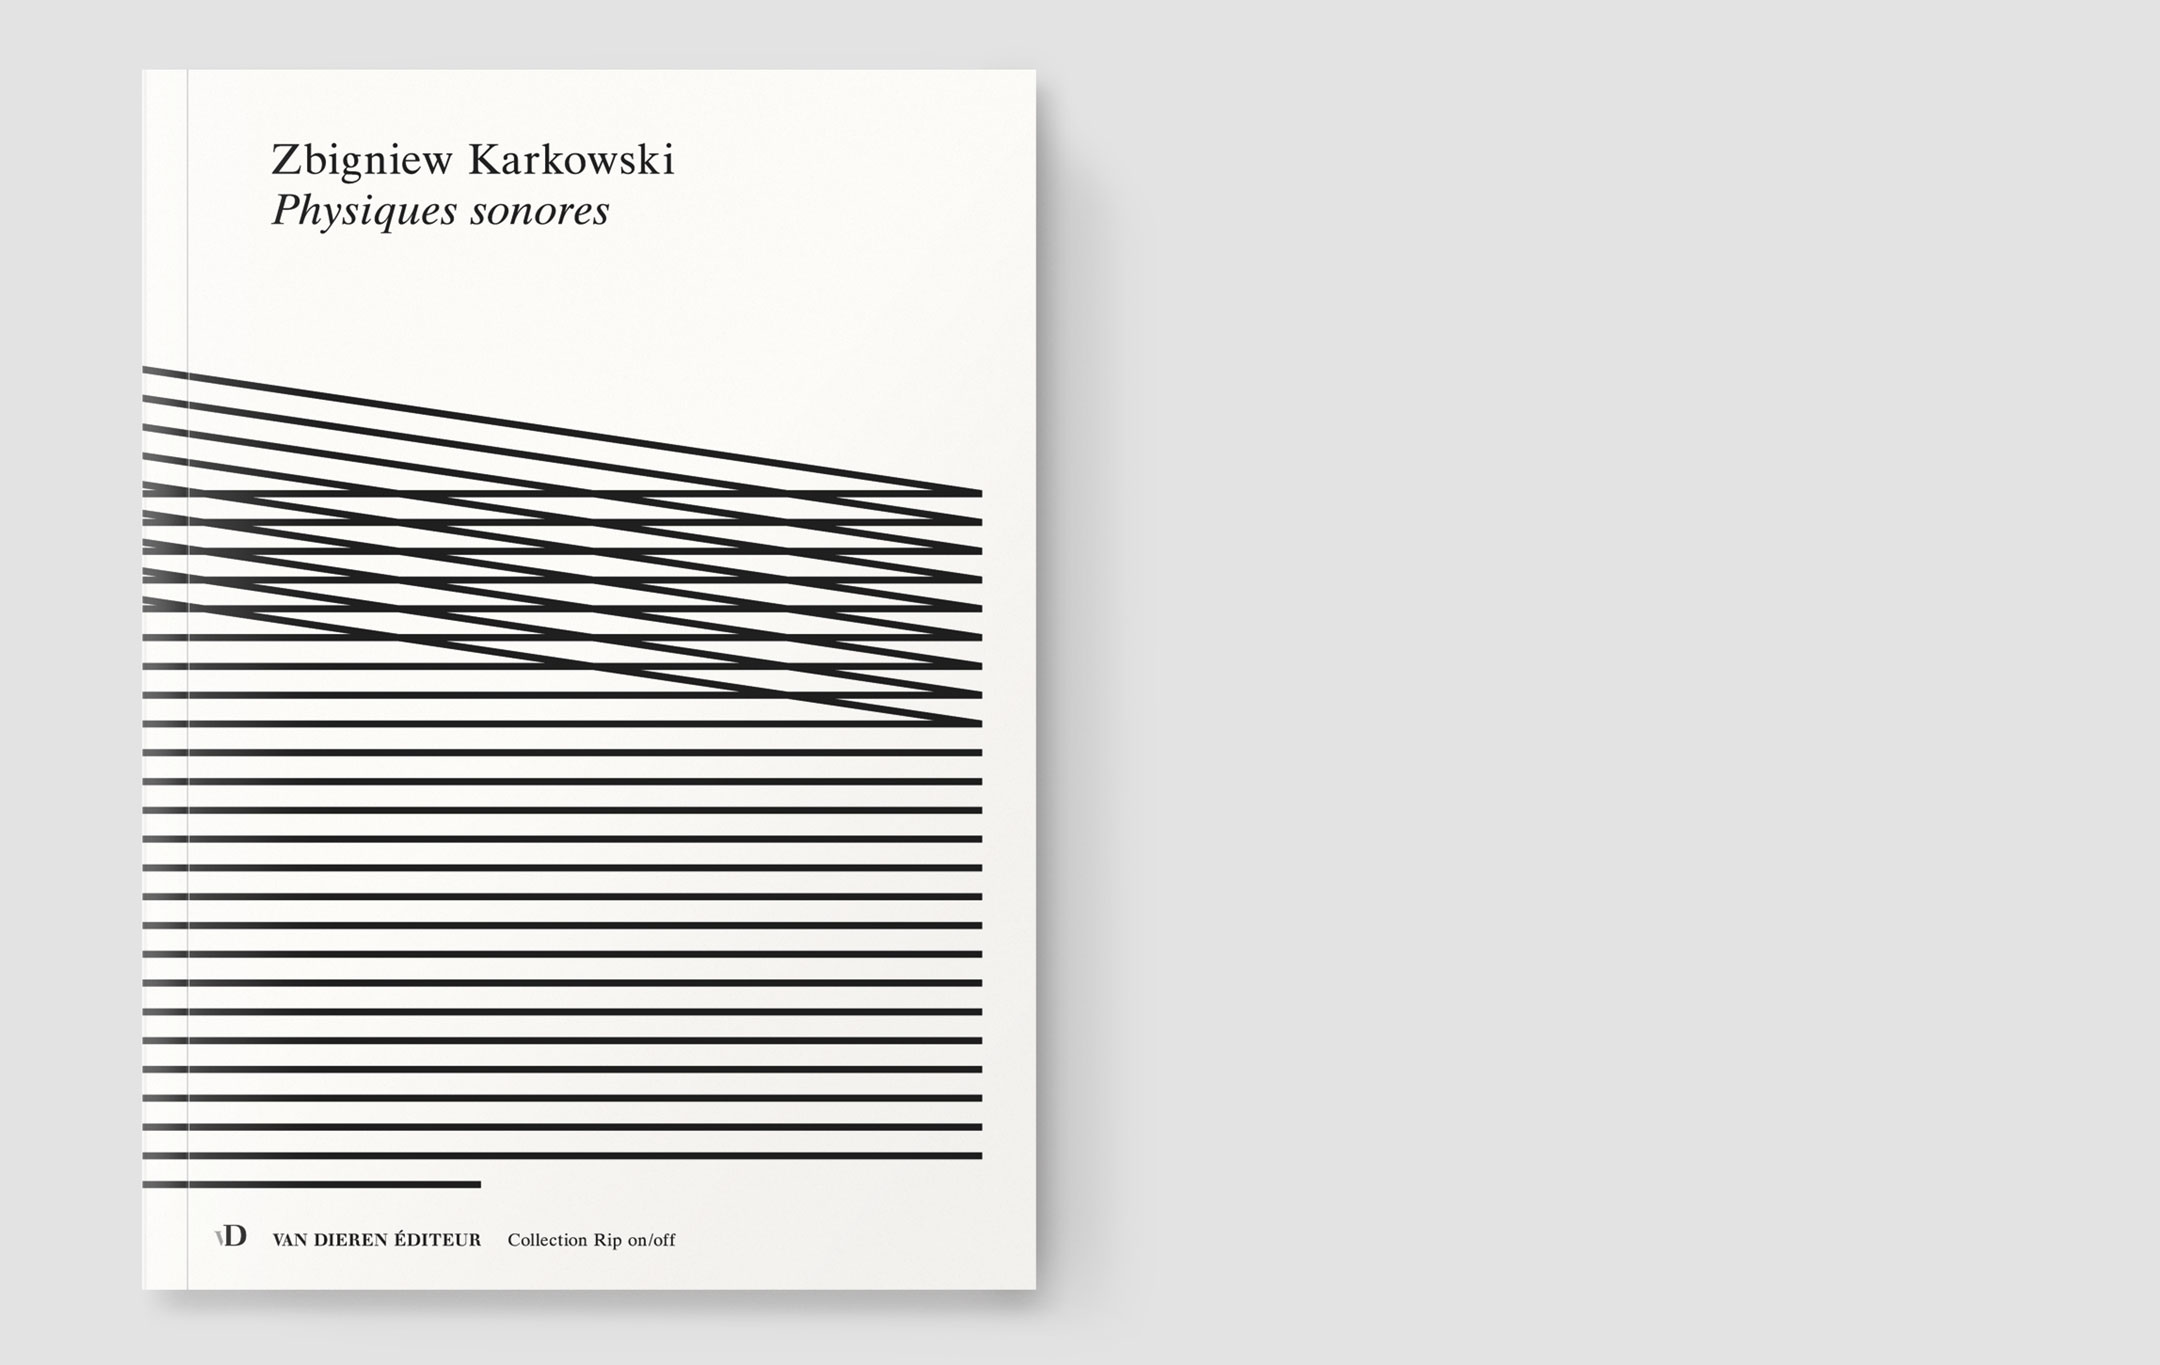 Zbigniew Karkowski, Physiques sonores